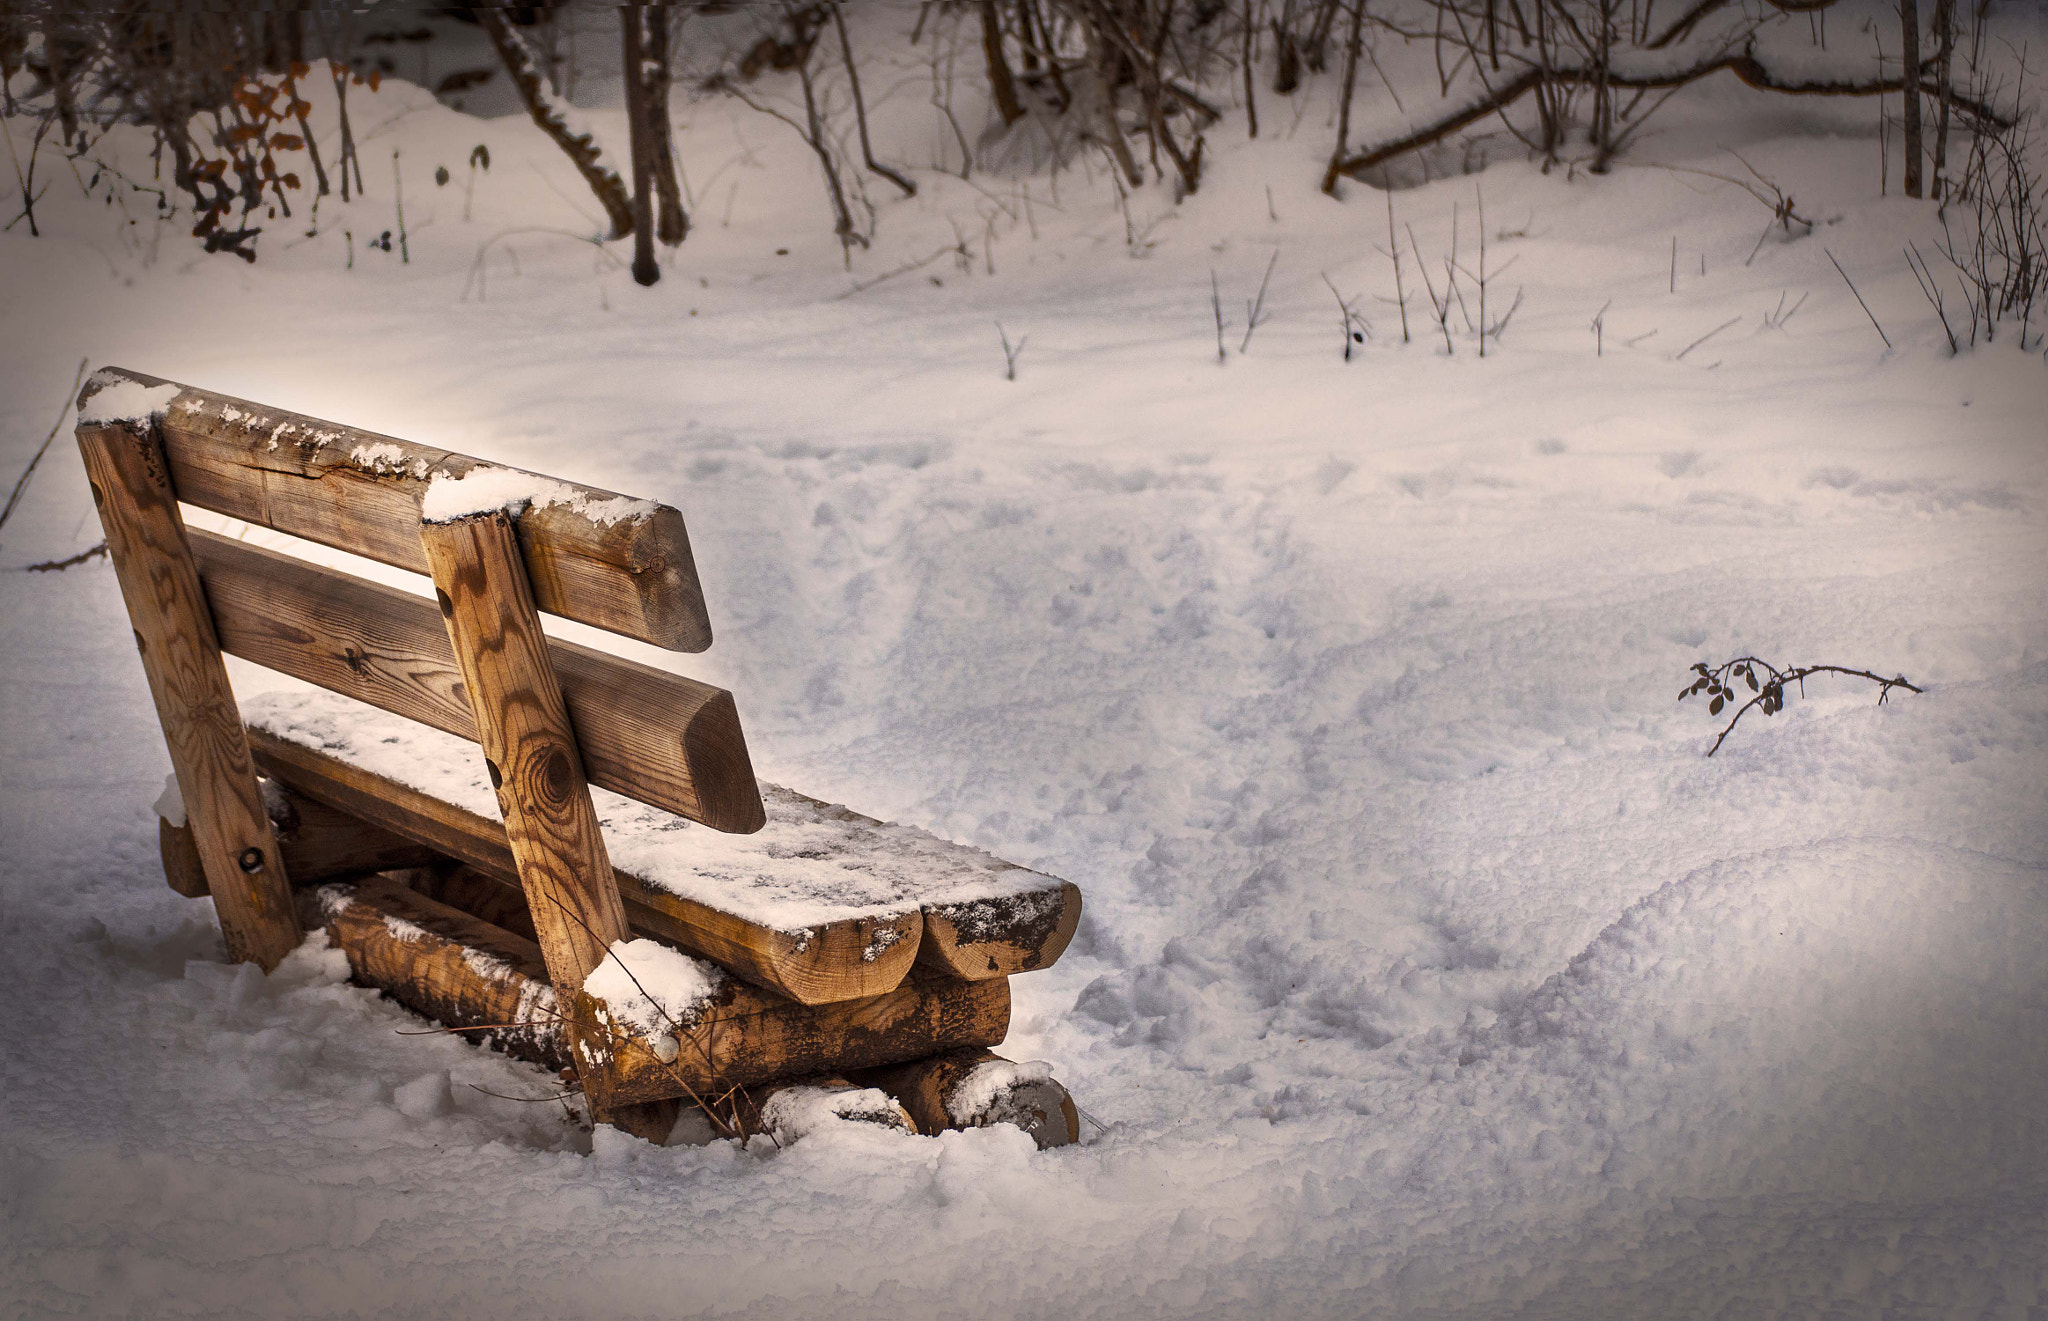 Photograph Take a seat by Zepp W on 500px